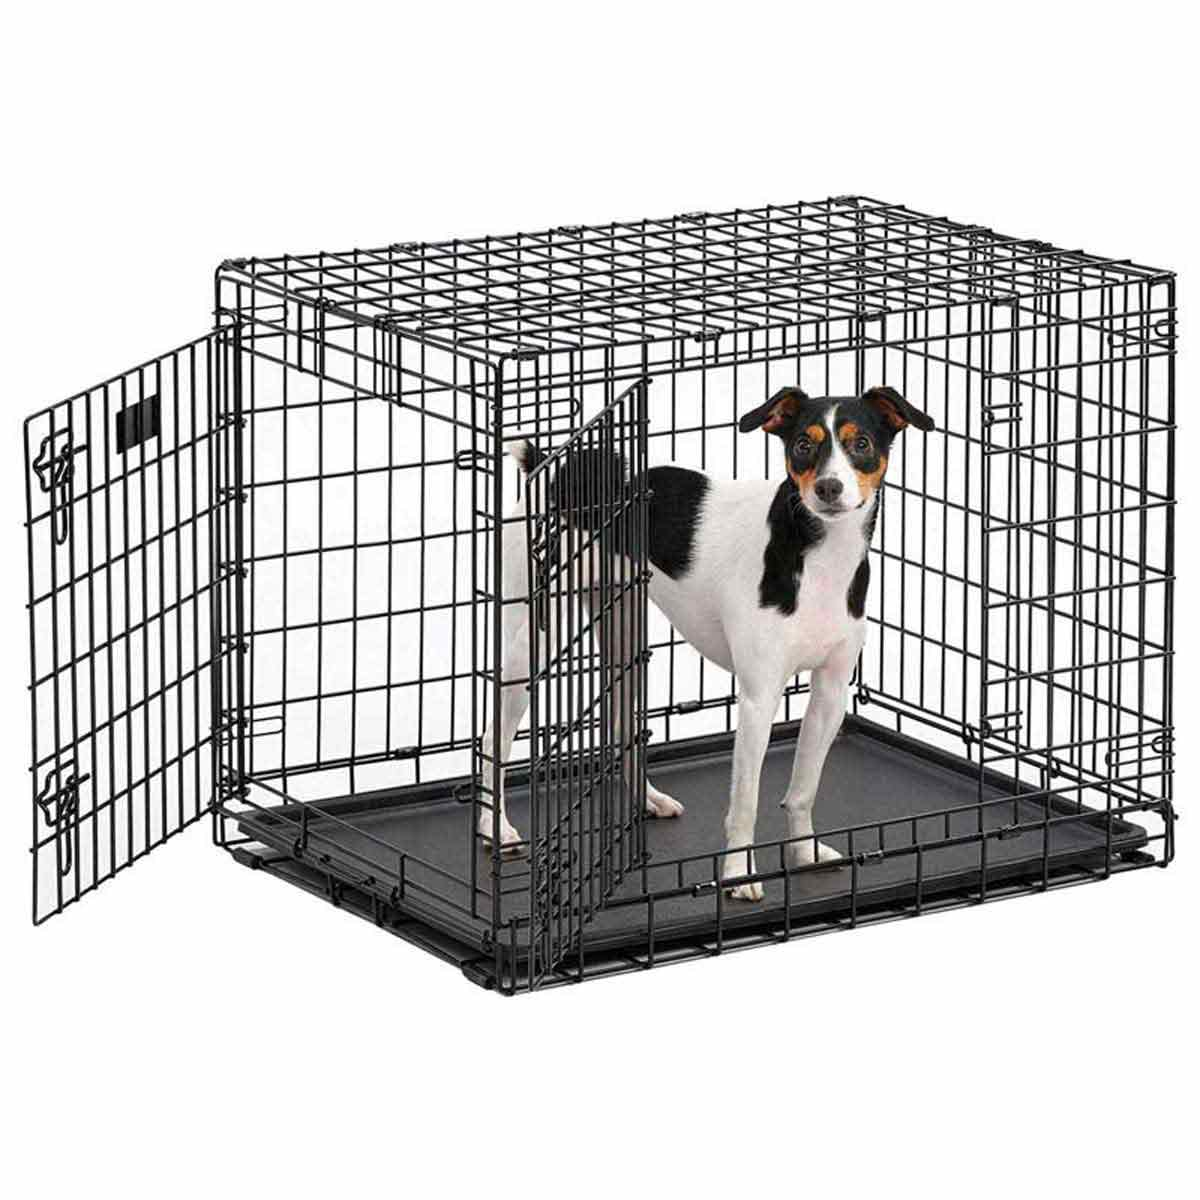 Midwest Ultima Pro-Double Door Crate for Dogs - 31 inches by 21.5 inches by 24 inches